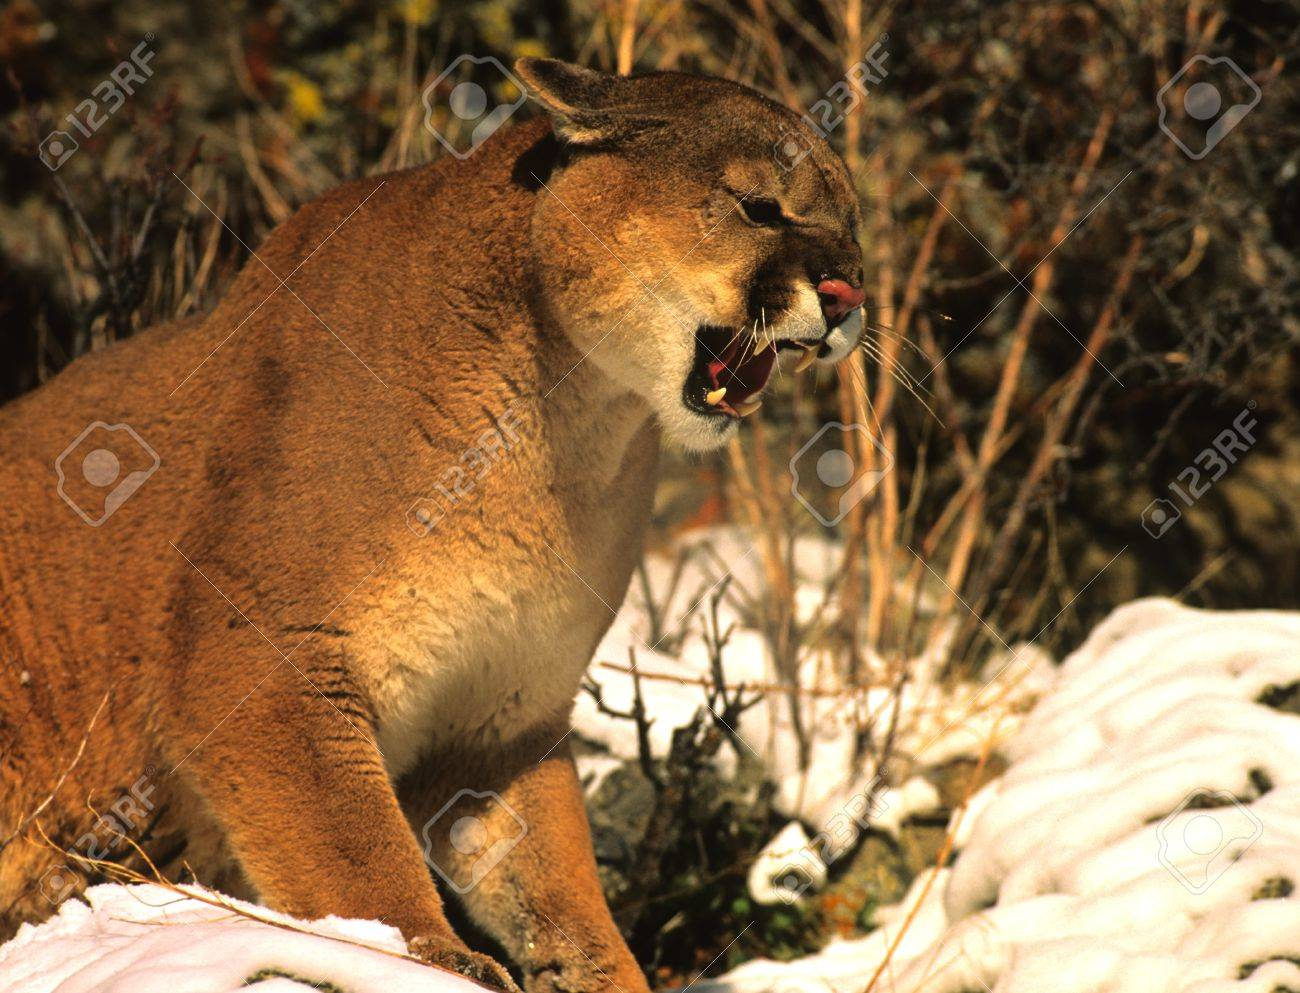 Mountain Lion Snarling - 8883622